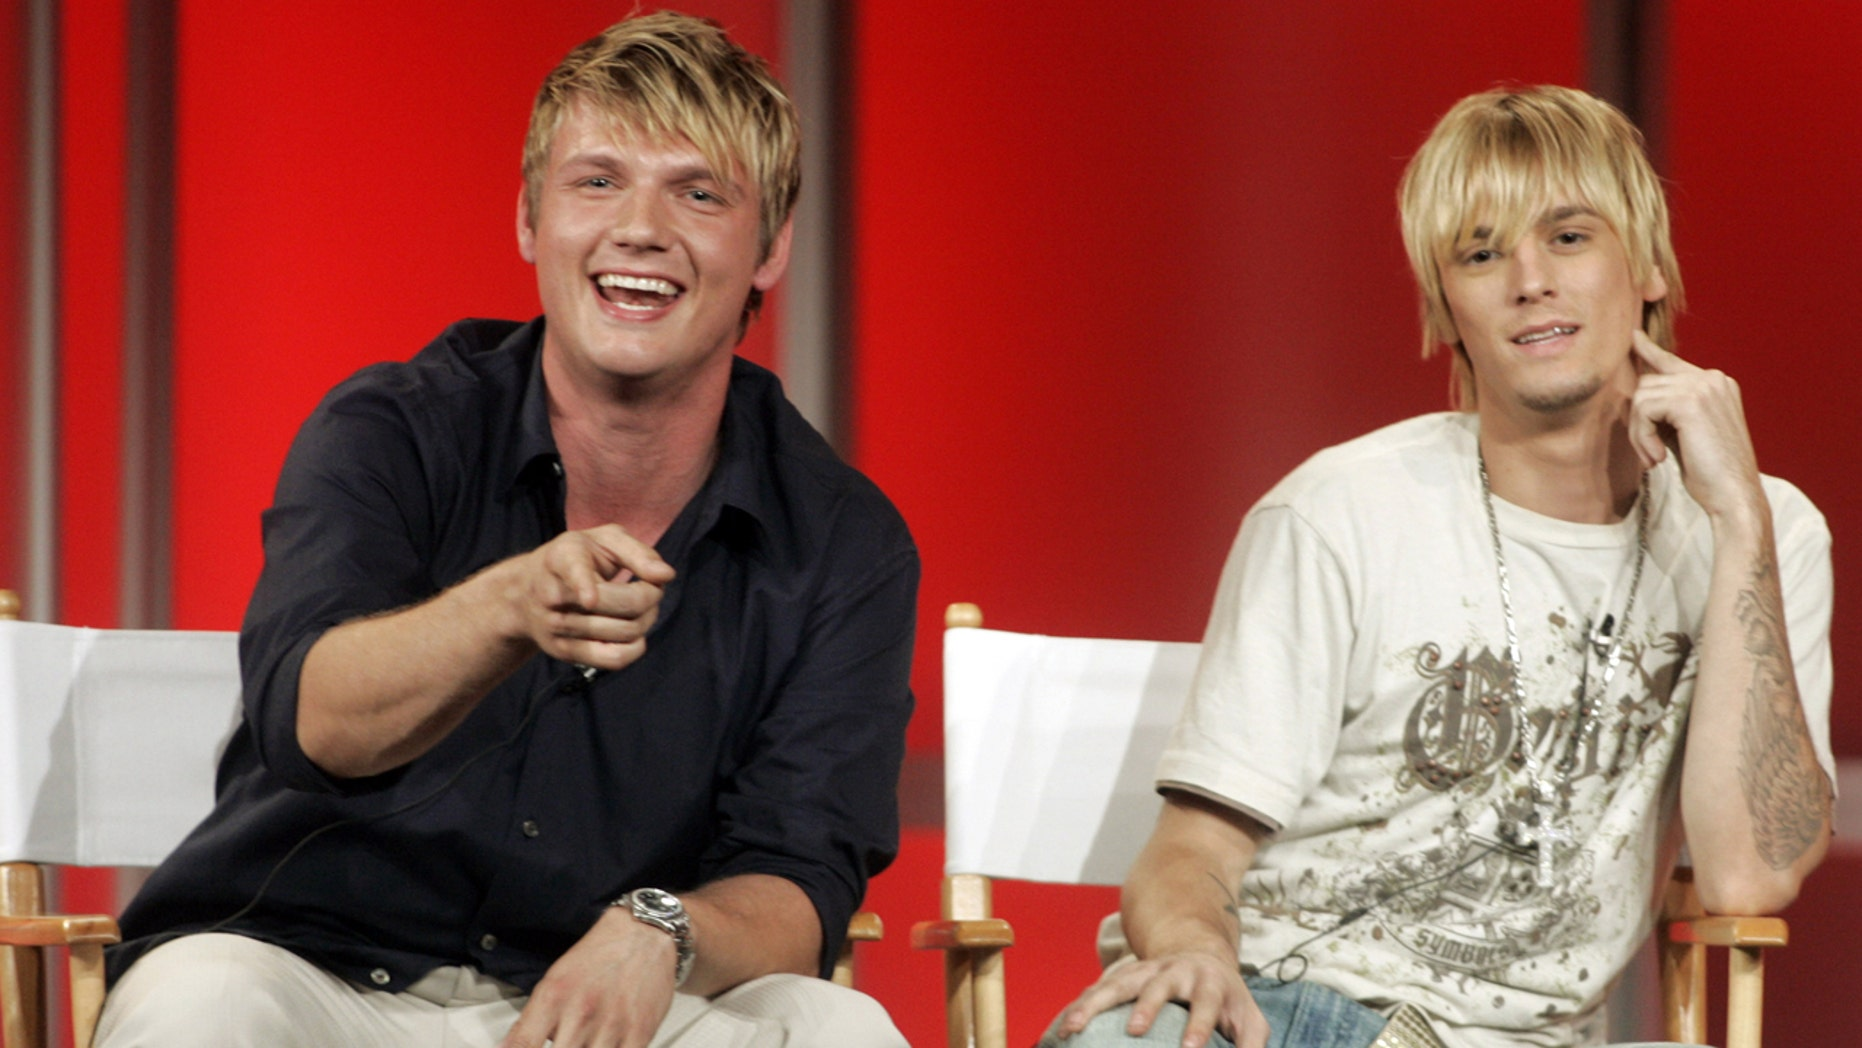 Singers and brothers Nick (L) and Aaron Carter answer questions about their new reality television program 'House of Carters' which features them and their three sisters on E! Networks during a session at a Cable Television Critics Association press tour in Pasadena, California July 11, 2006. The series will premiere in October 2006. REUTERS/Fred Prouser (UNITED STATES) - RTR1FEQR